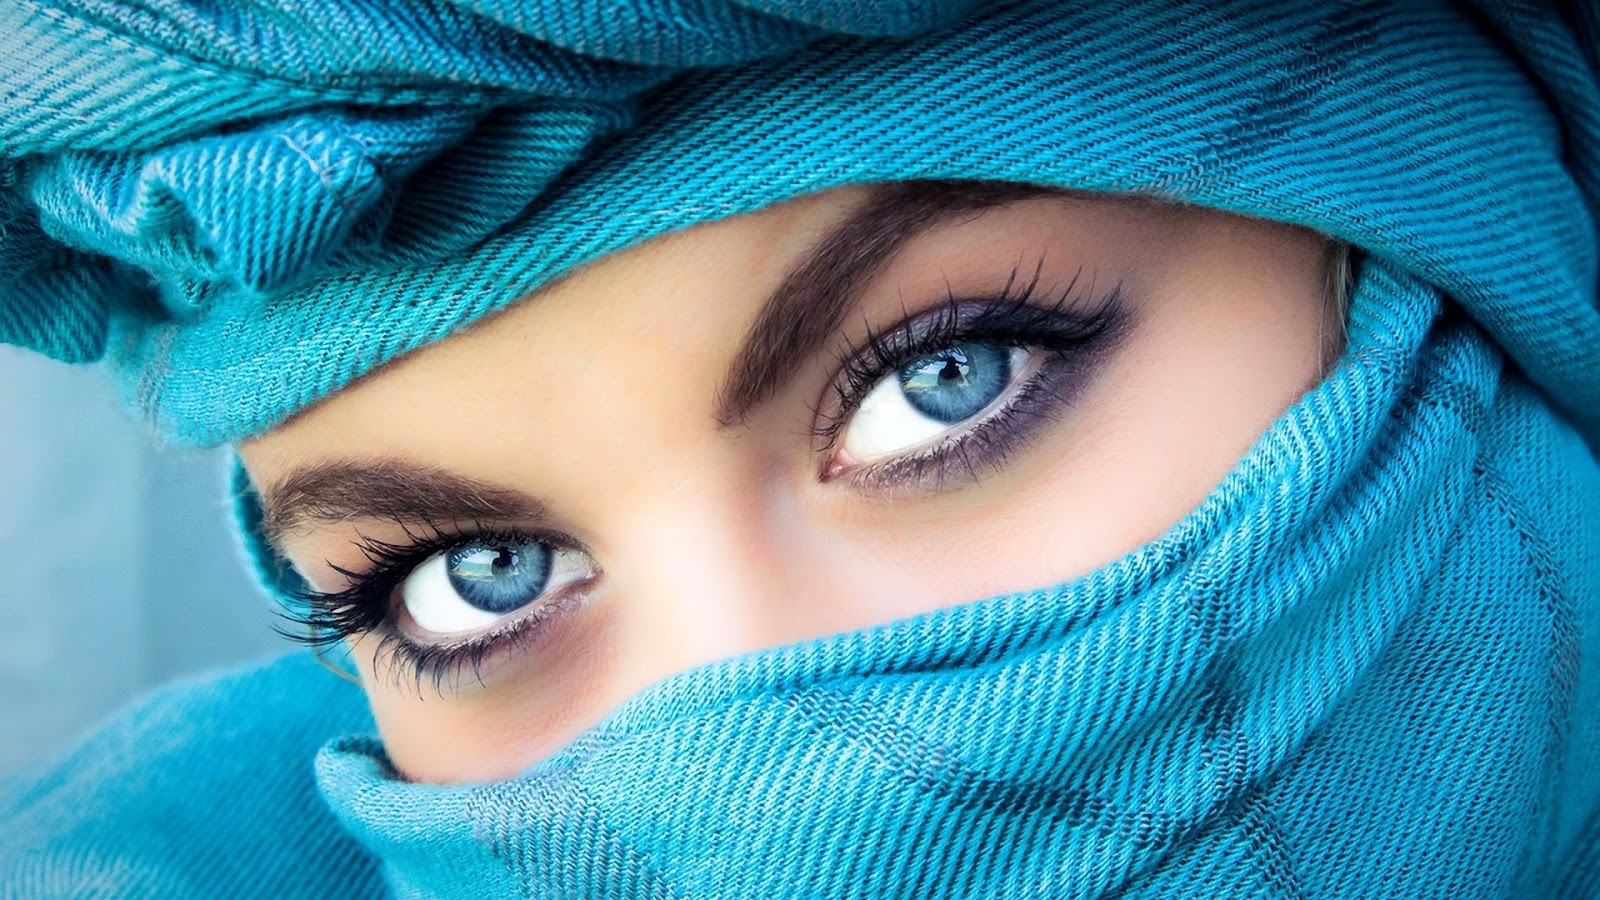 FamousCelebrityBible | Beautiful Eyes